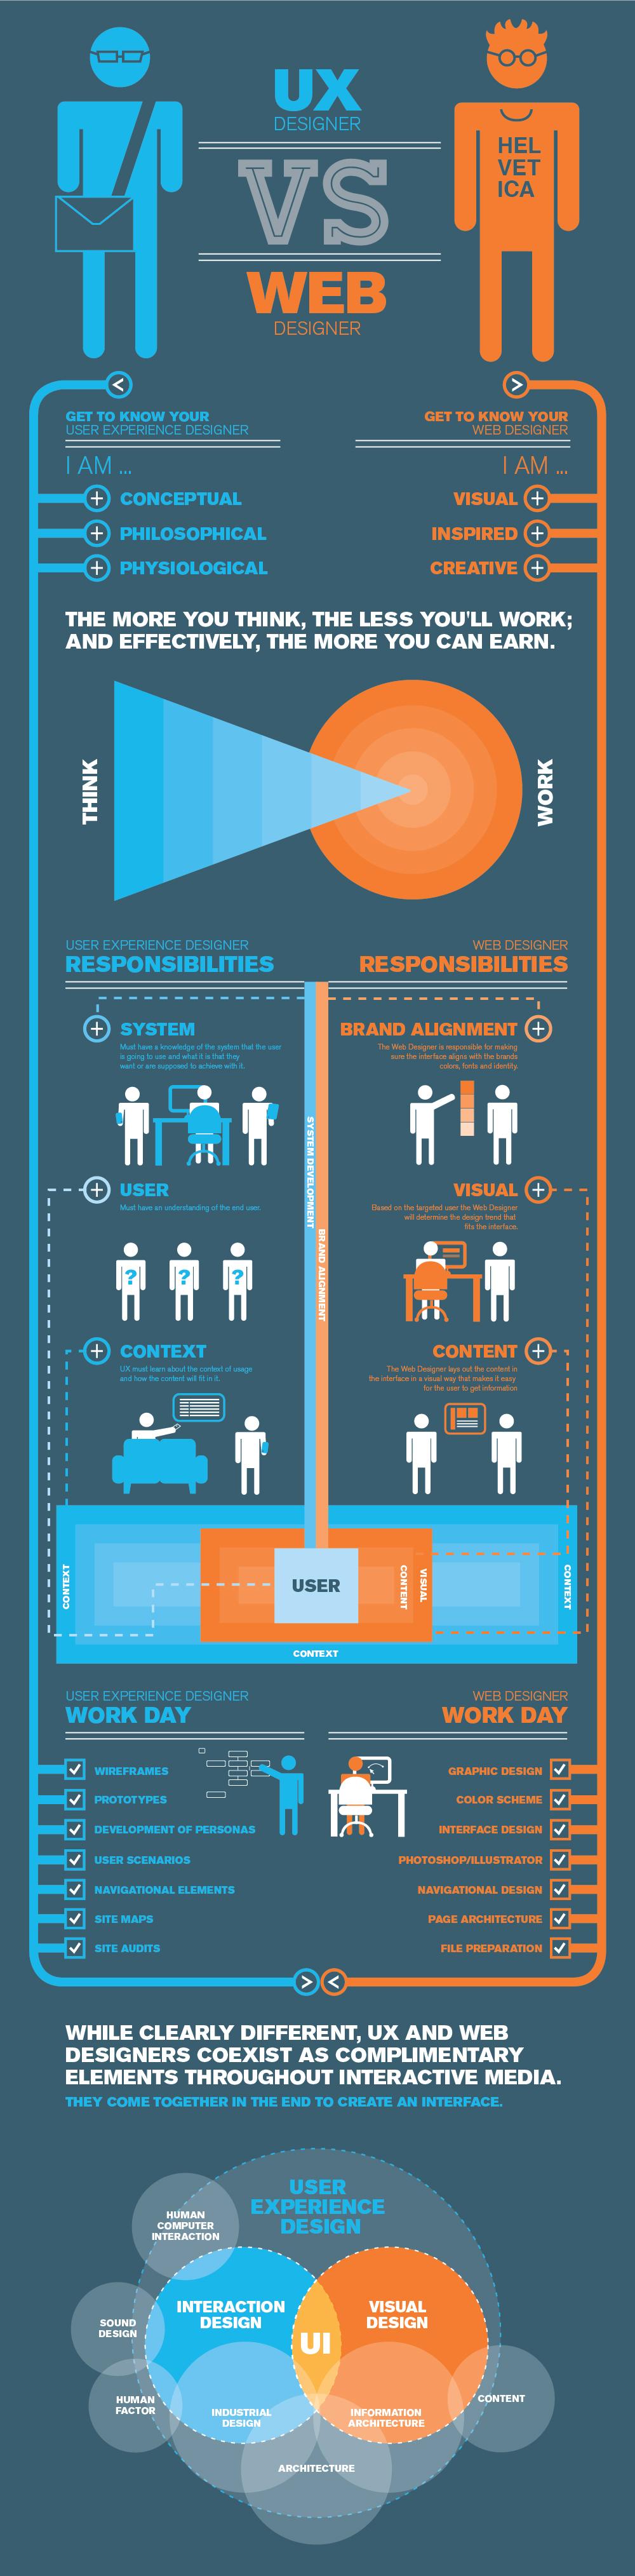 infograhic of web designer and ux designer